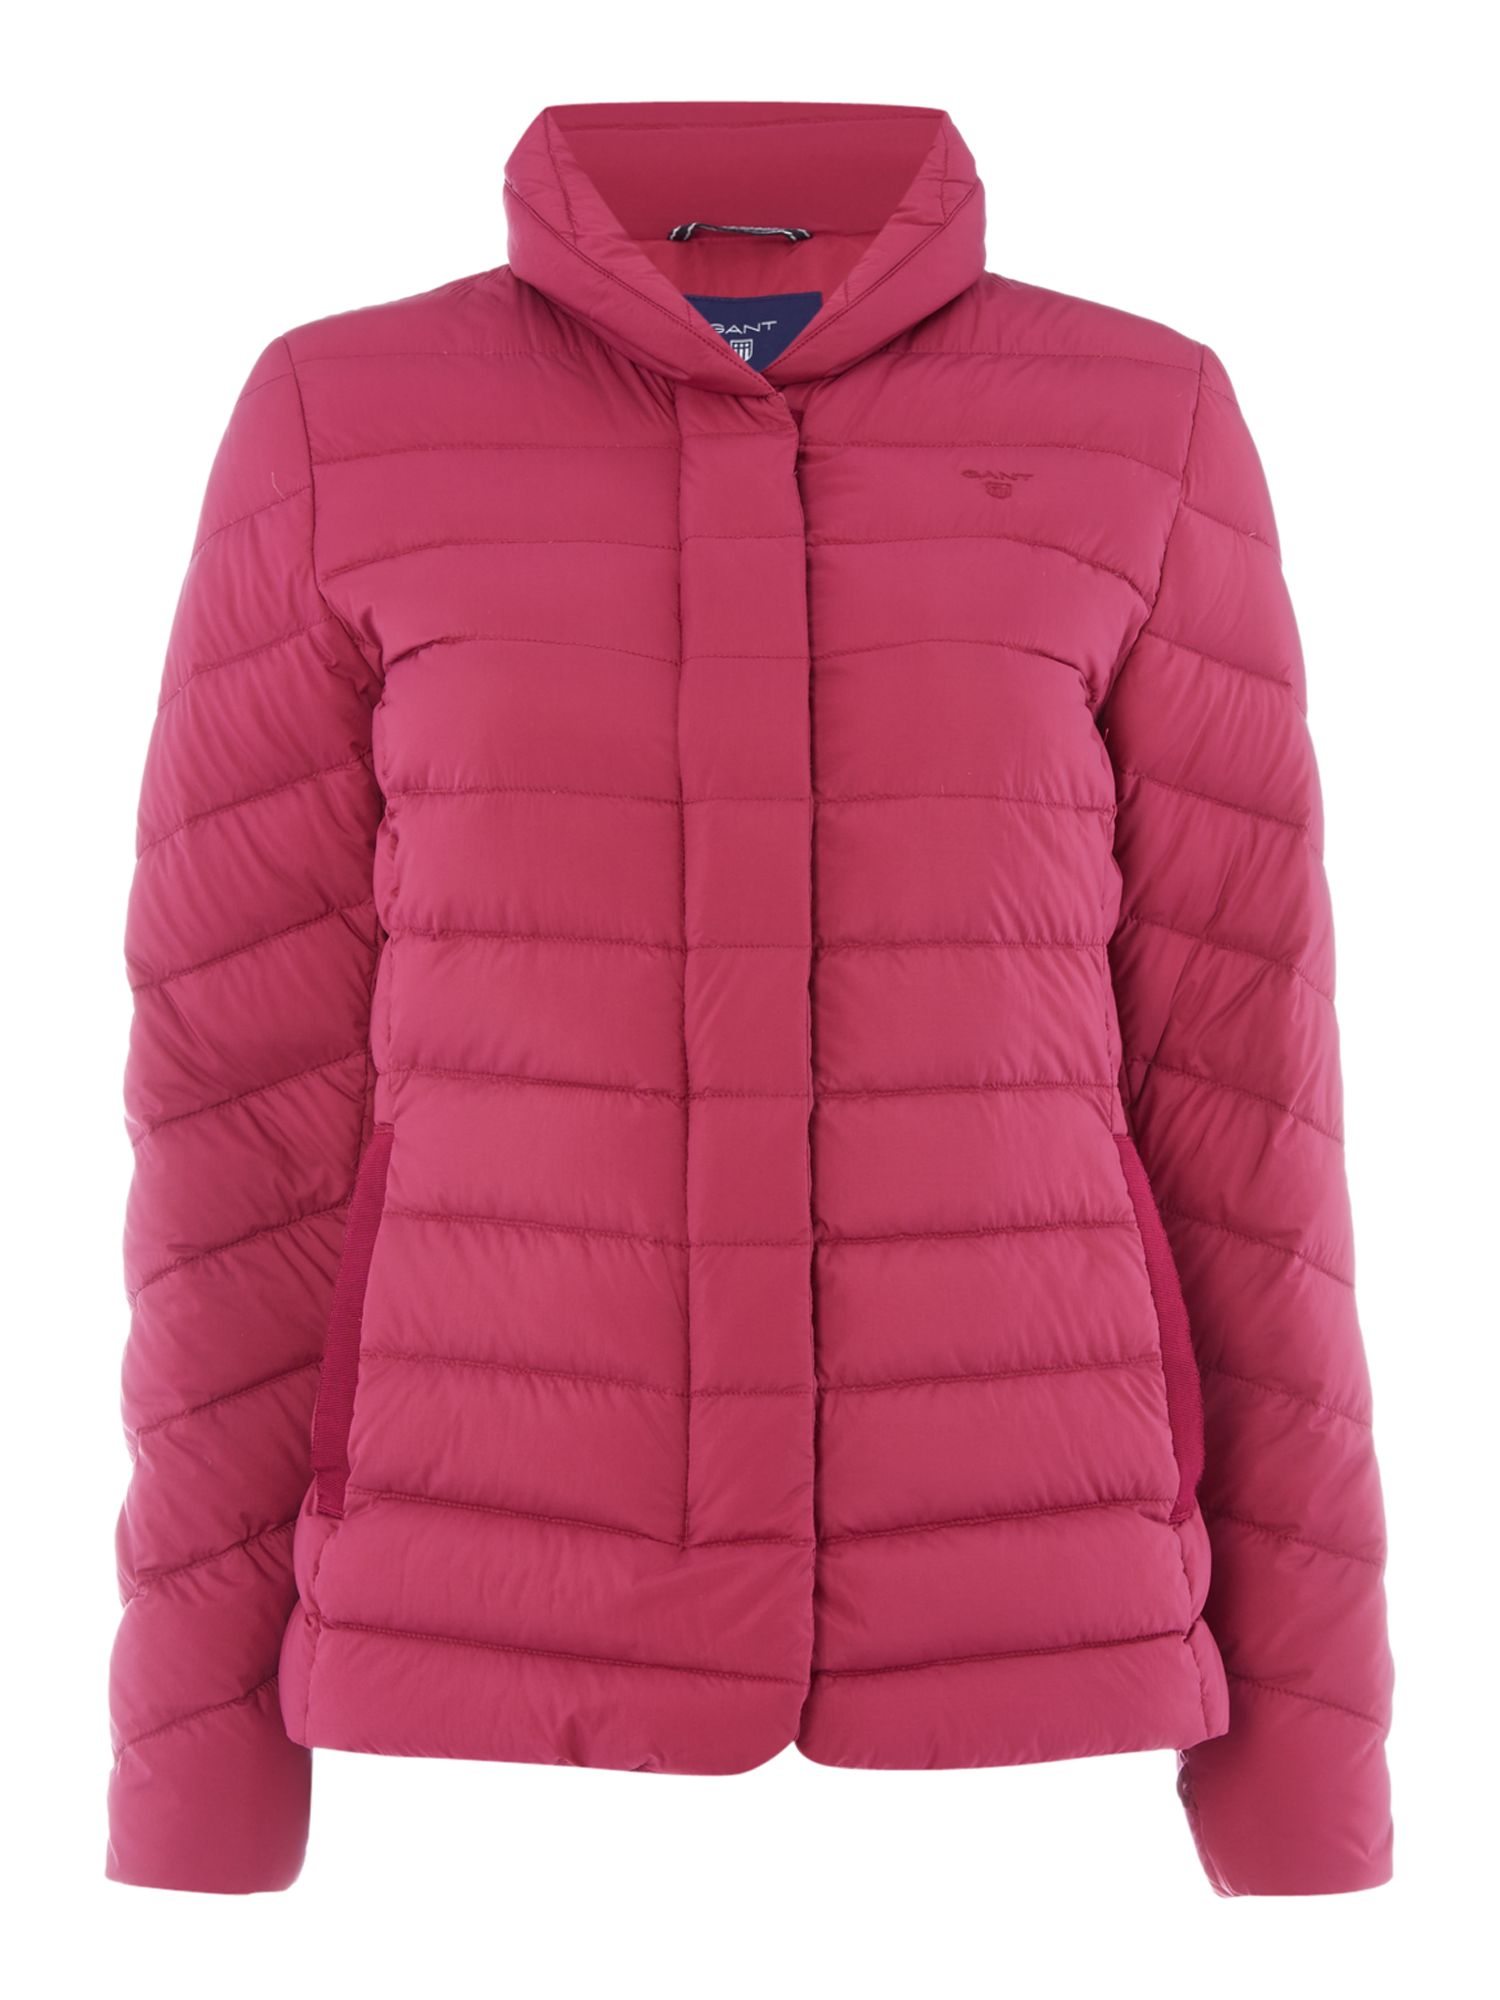 Gant Lightweight Down Short Jacket With Stand Collar, Raspberry